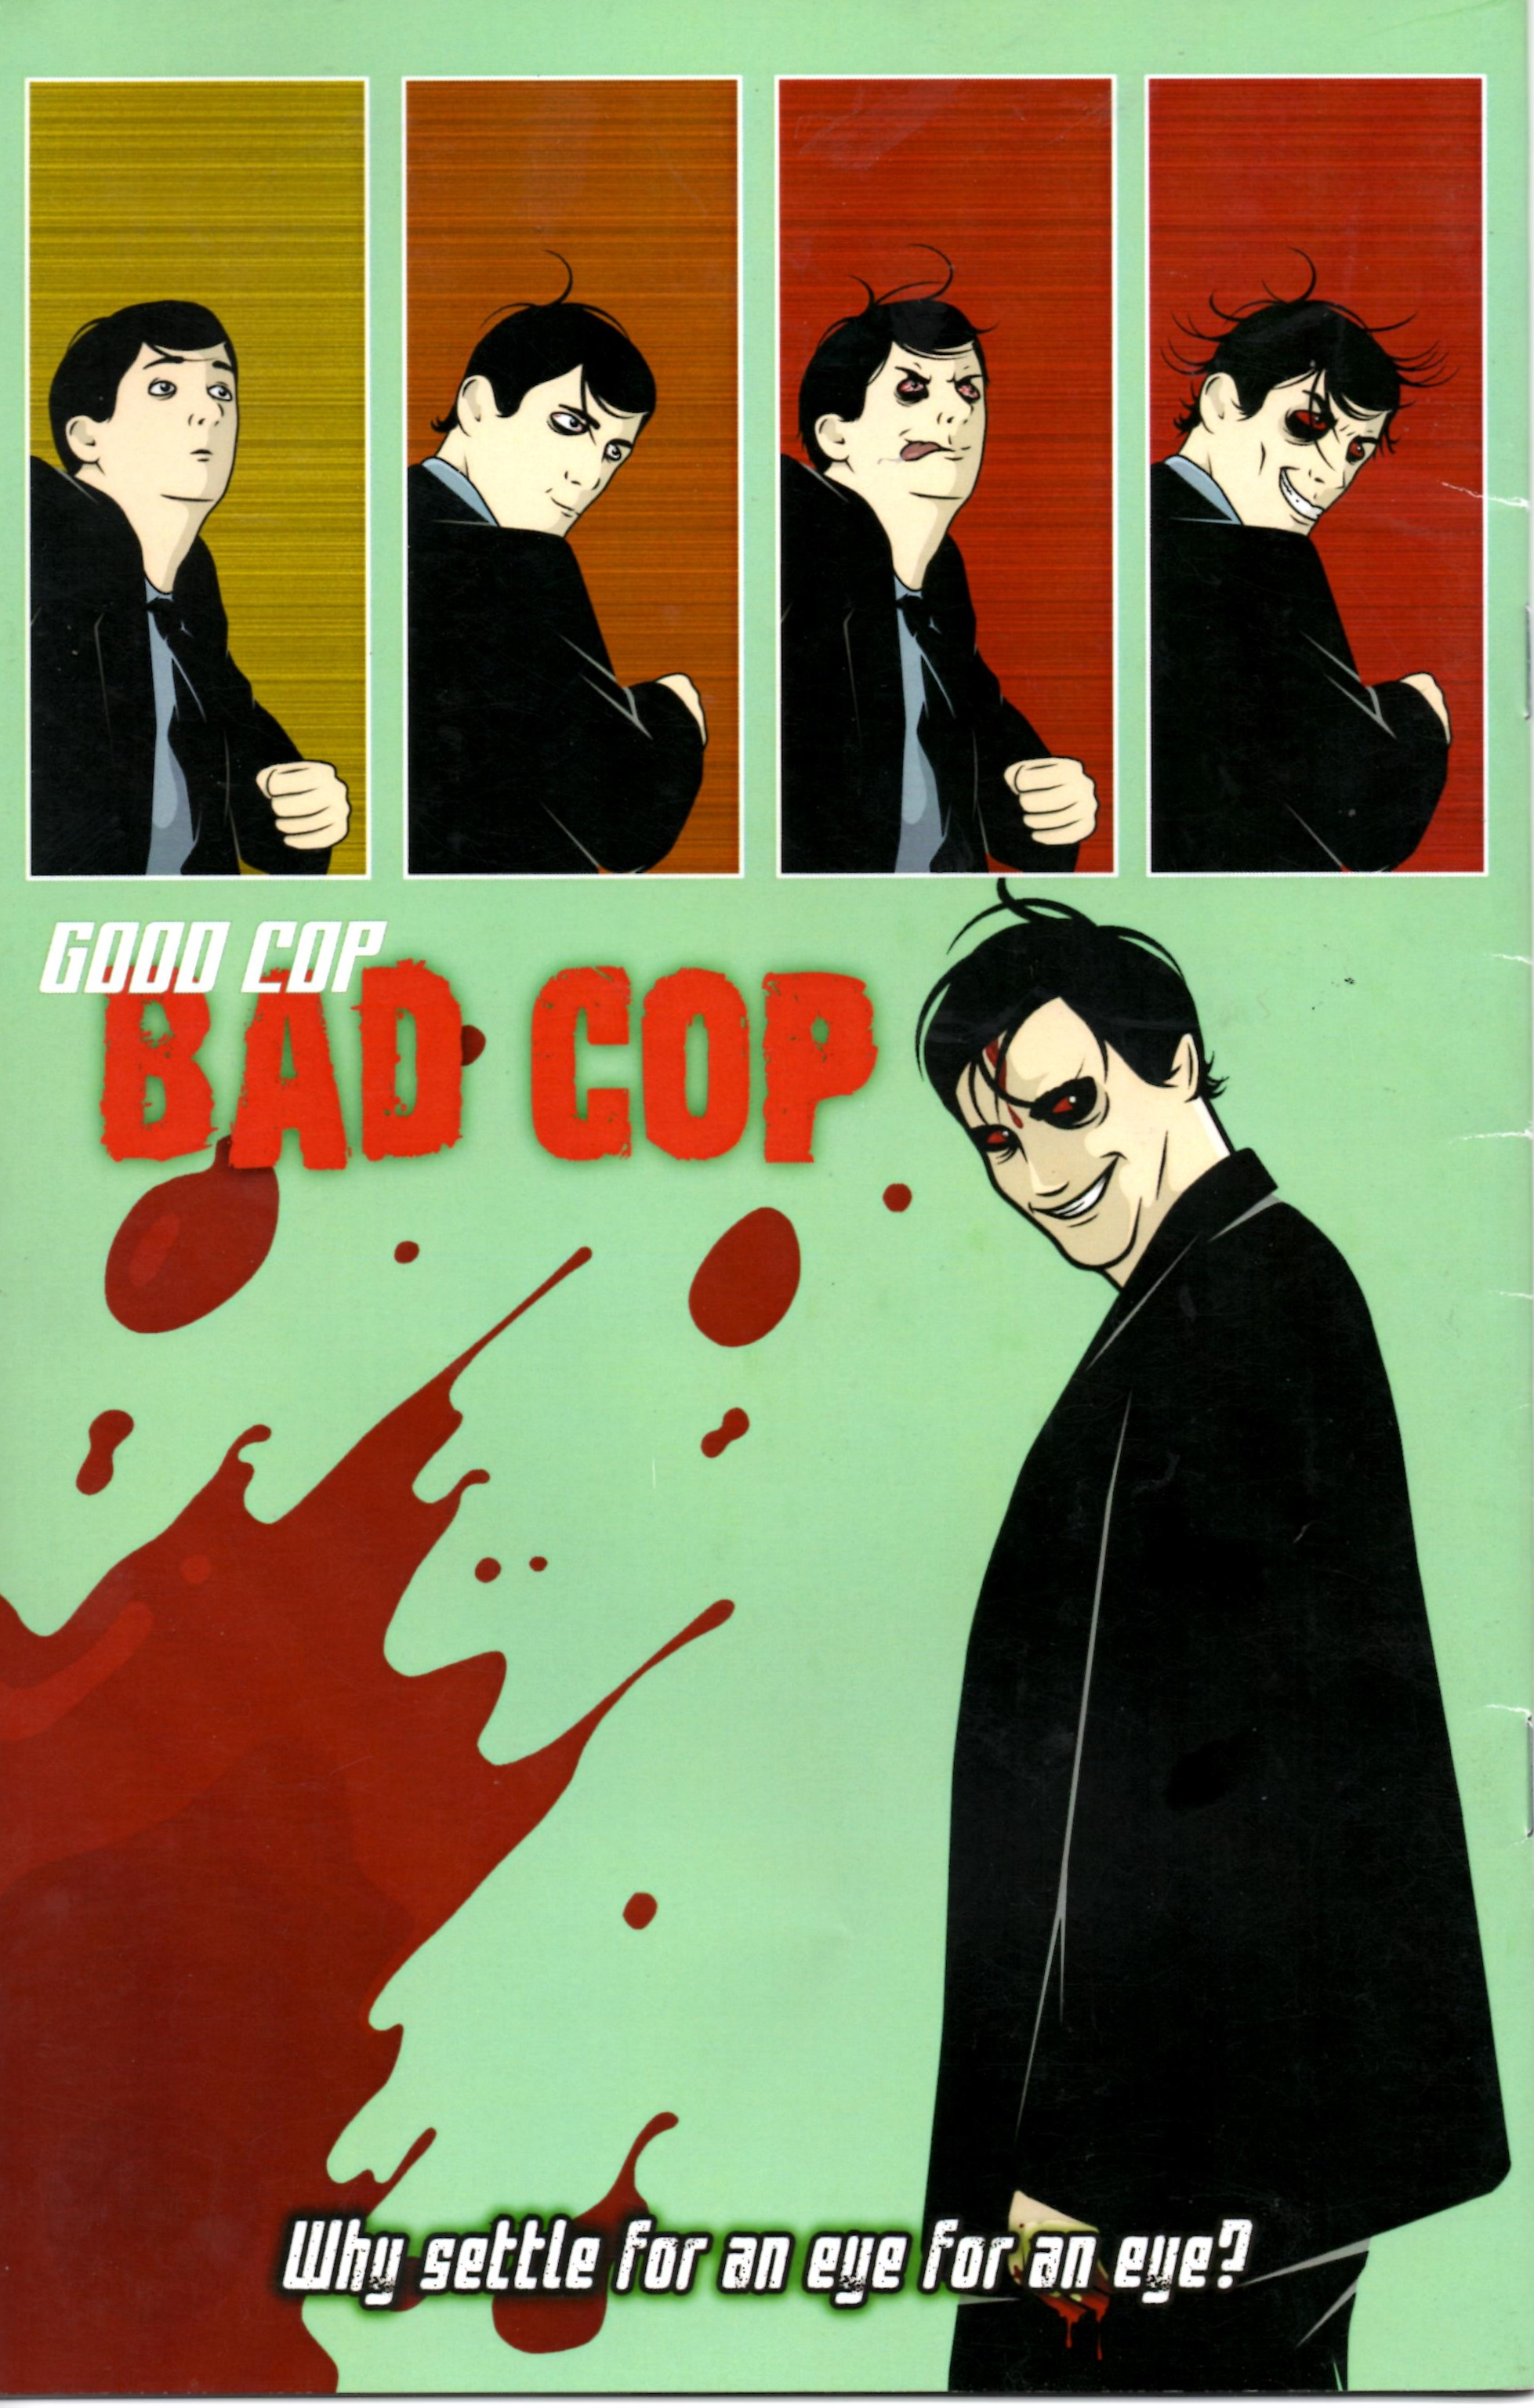 Good Cop, Bad Cop - story by Jim Alexander, art by Luke Cooper